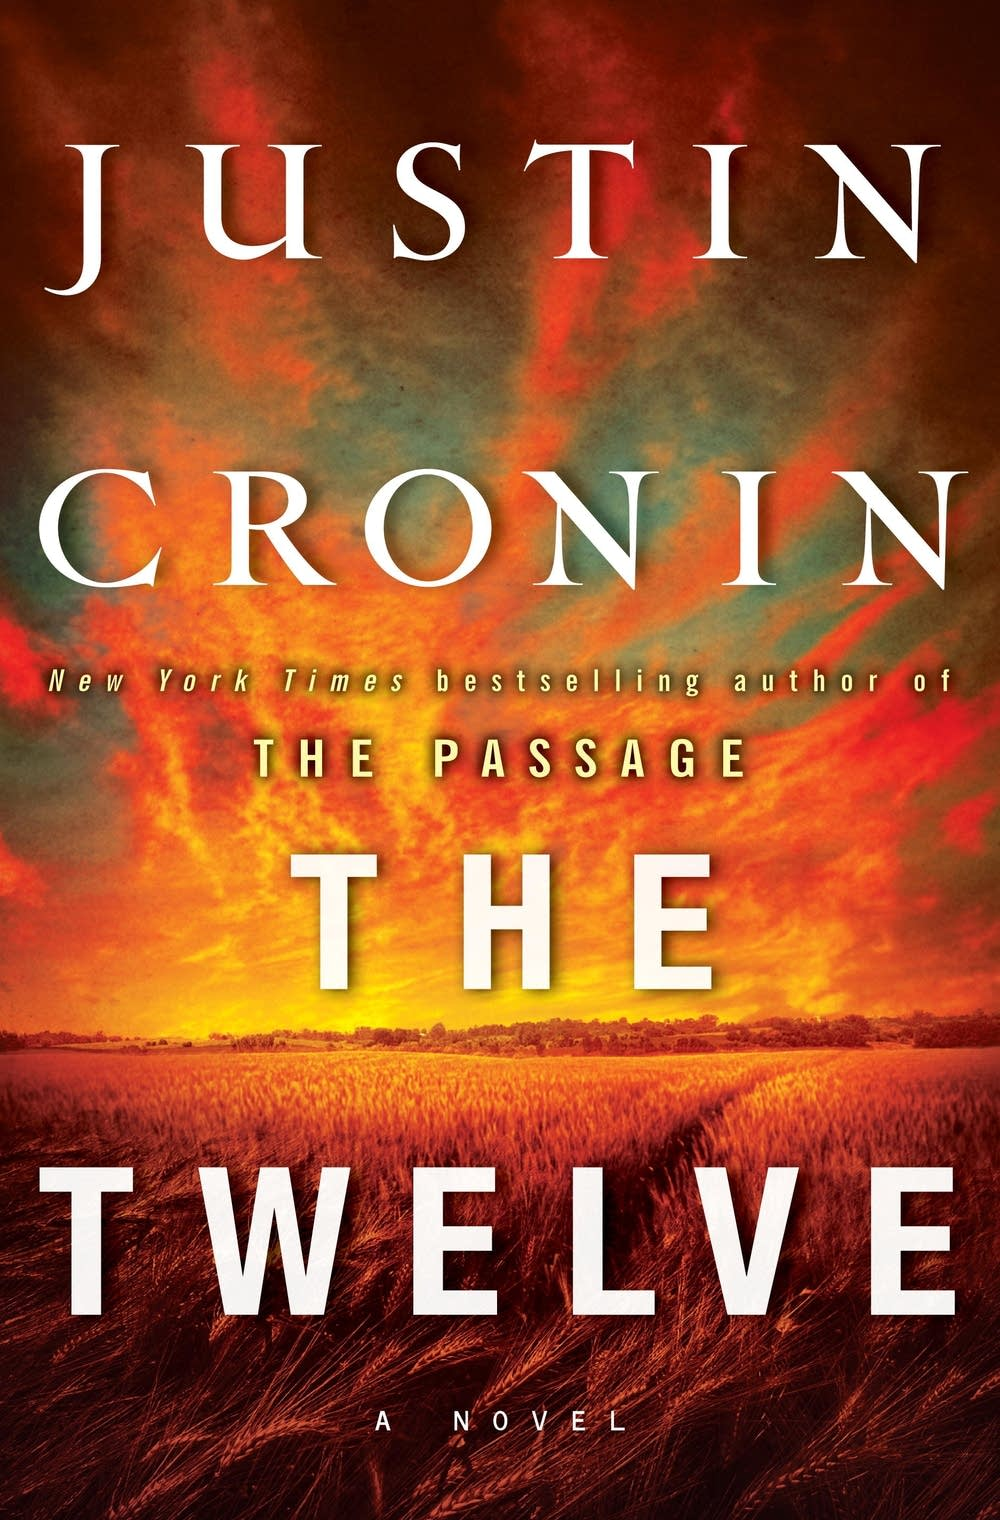 'The Twelve' by Justin Cronin